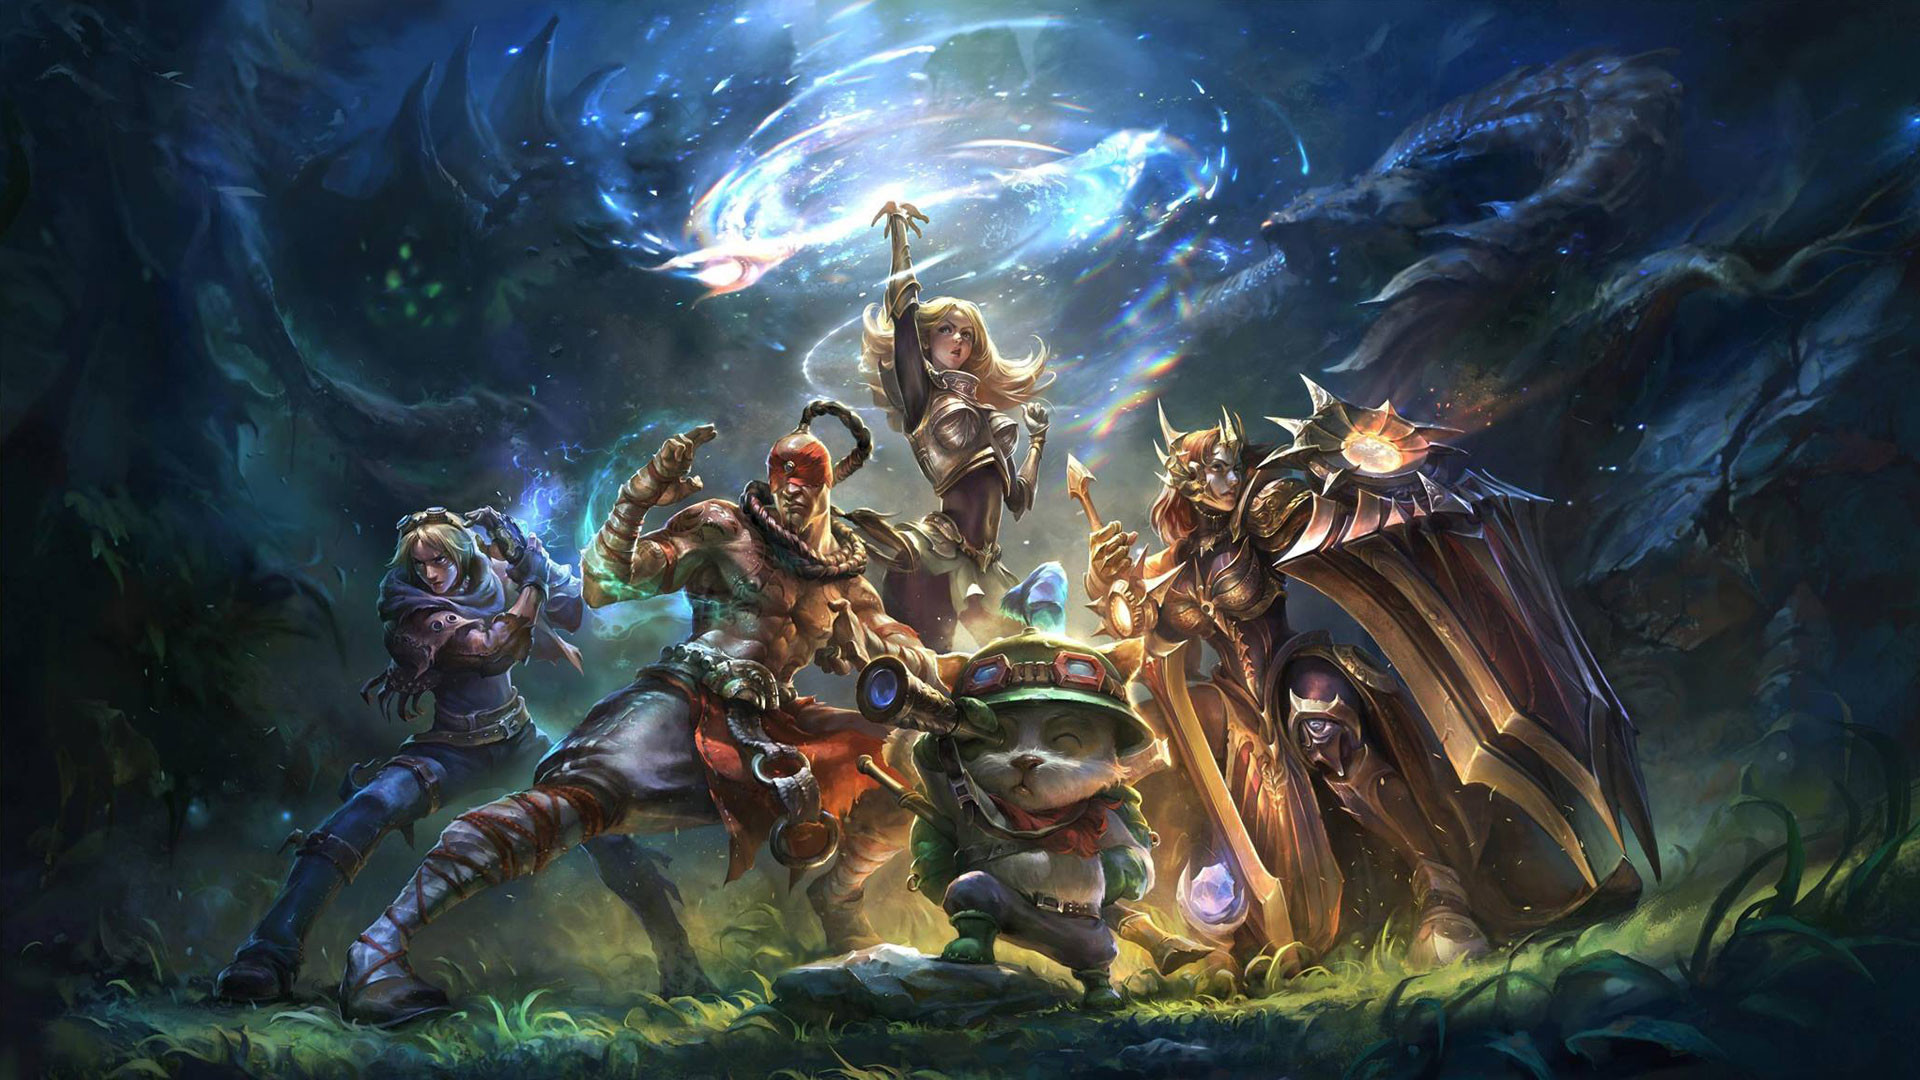 1920x1080 League Of Legend Wallpapers | League Of Legend Full HD Quality Wallpapers